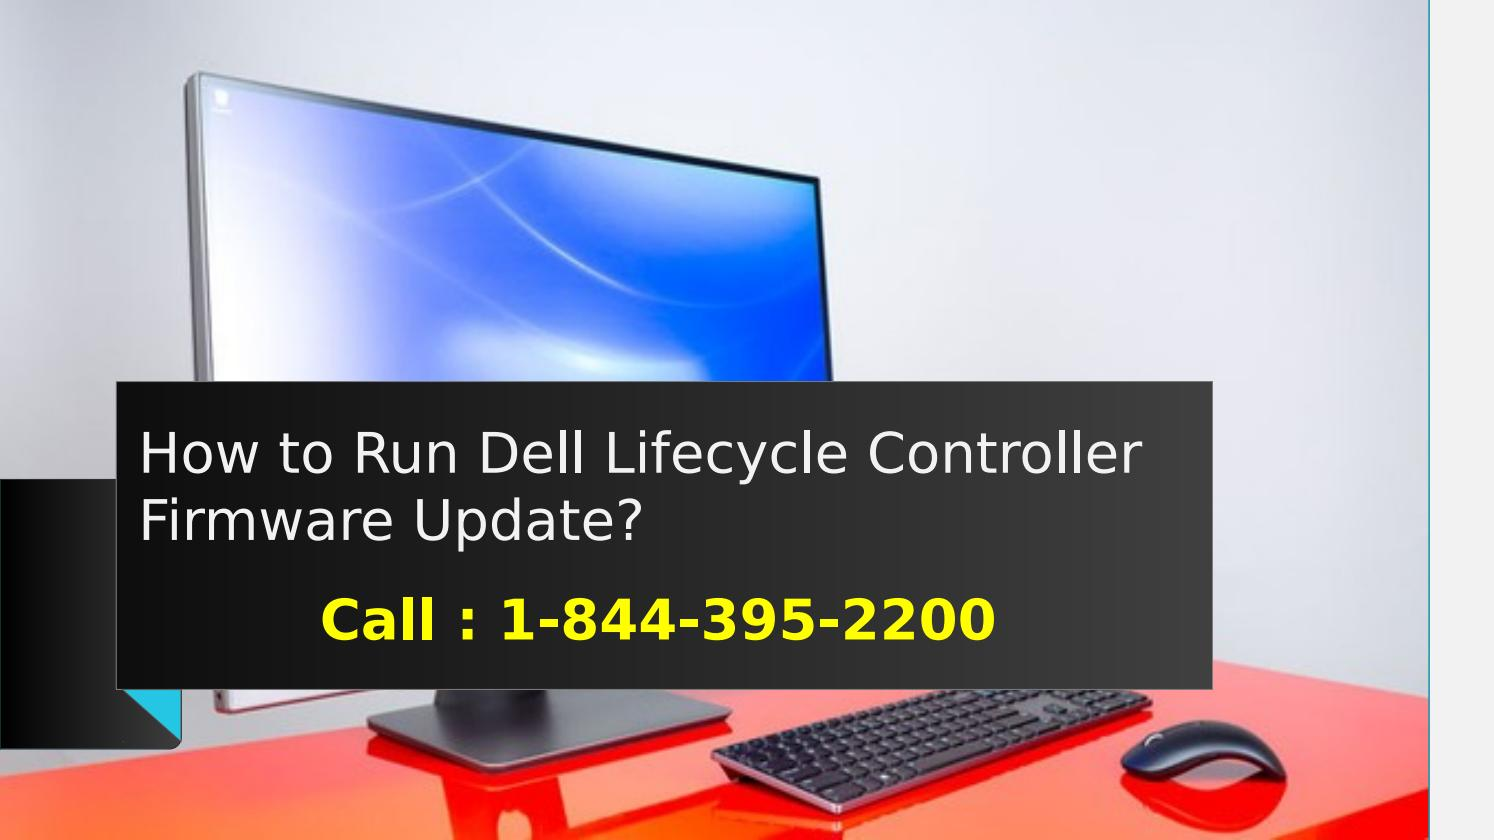 How to Run Dell Lifecycle Controller Firmware Update by Dell